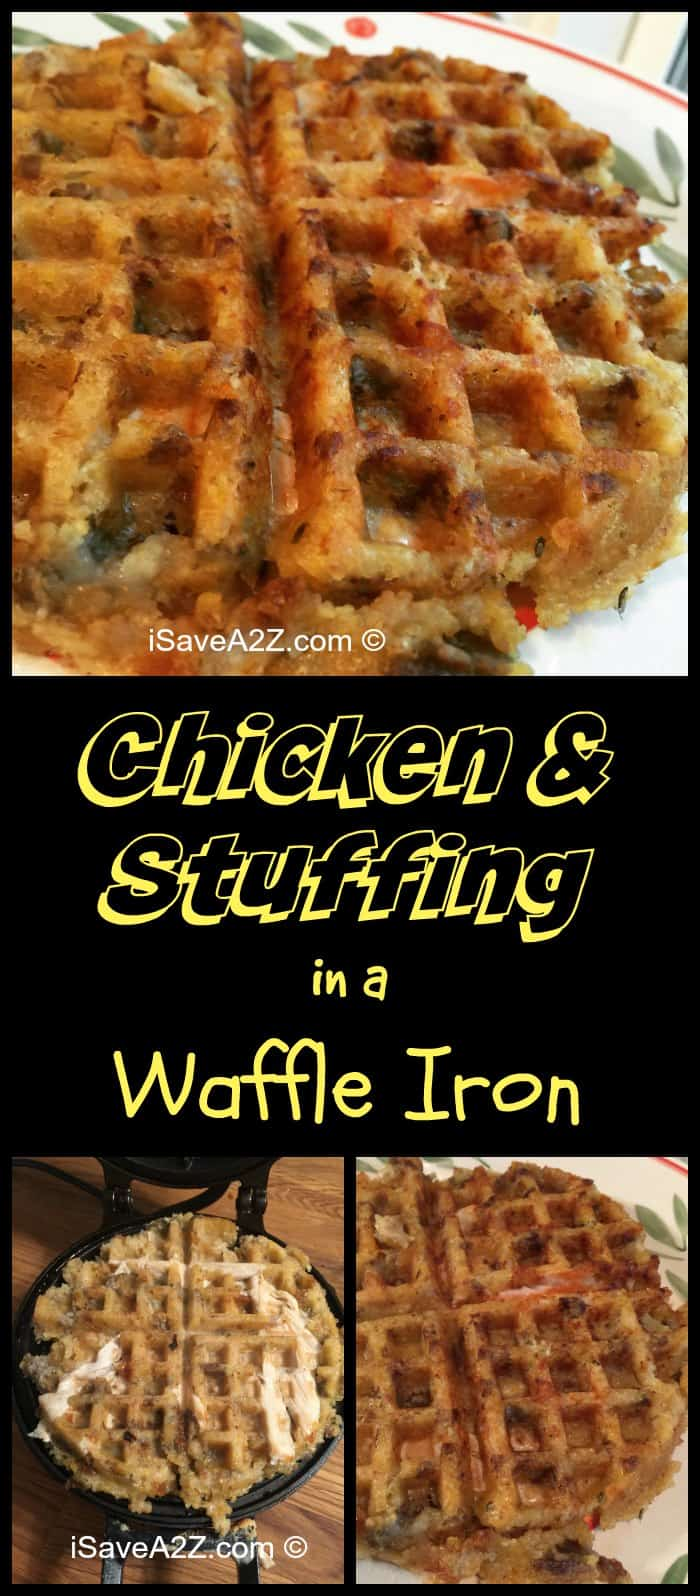 We heated up some Chicken and Stuffing in a waffle iron and it came out amazing!